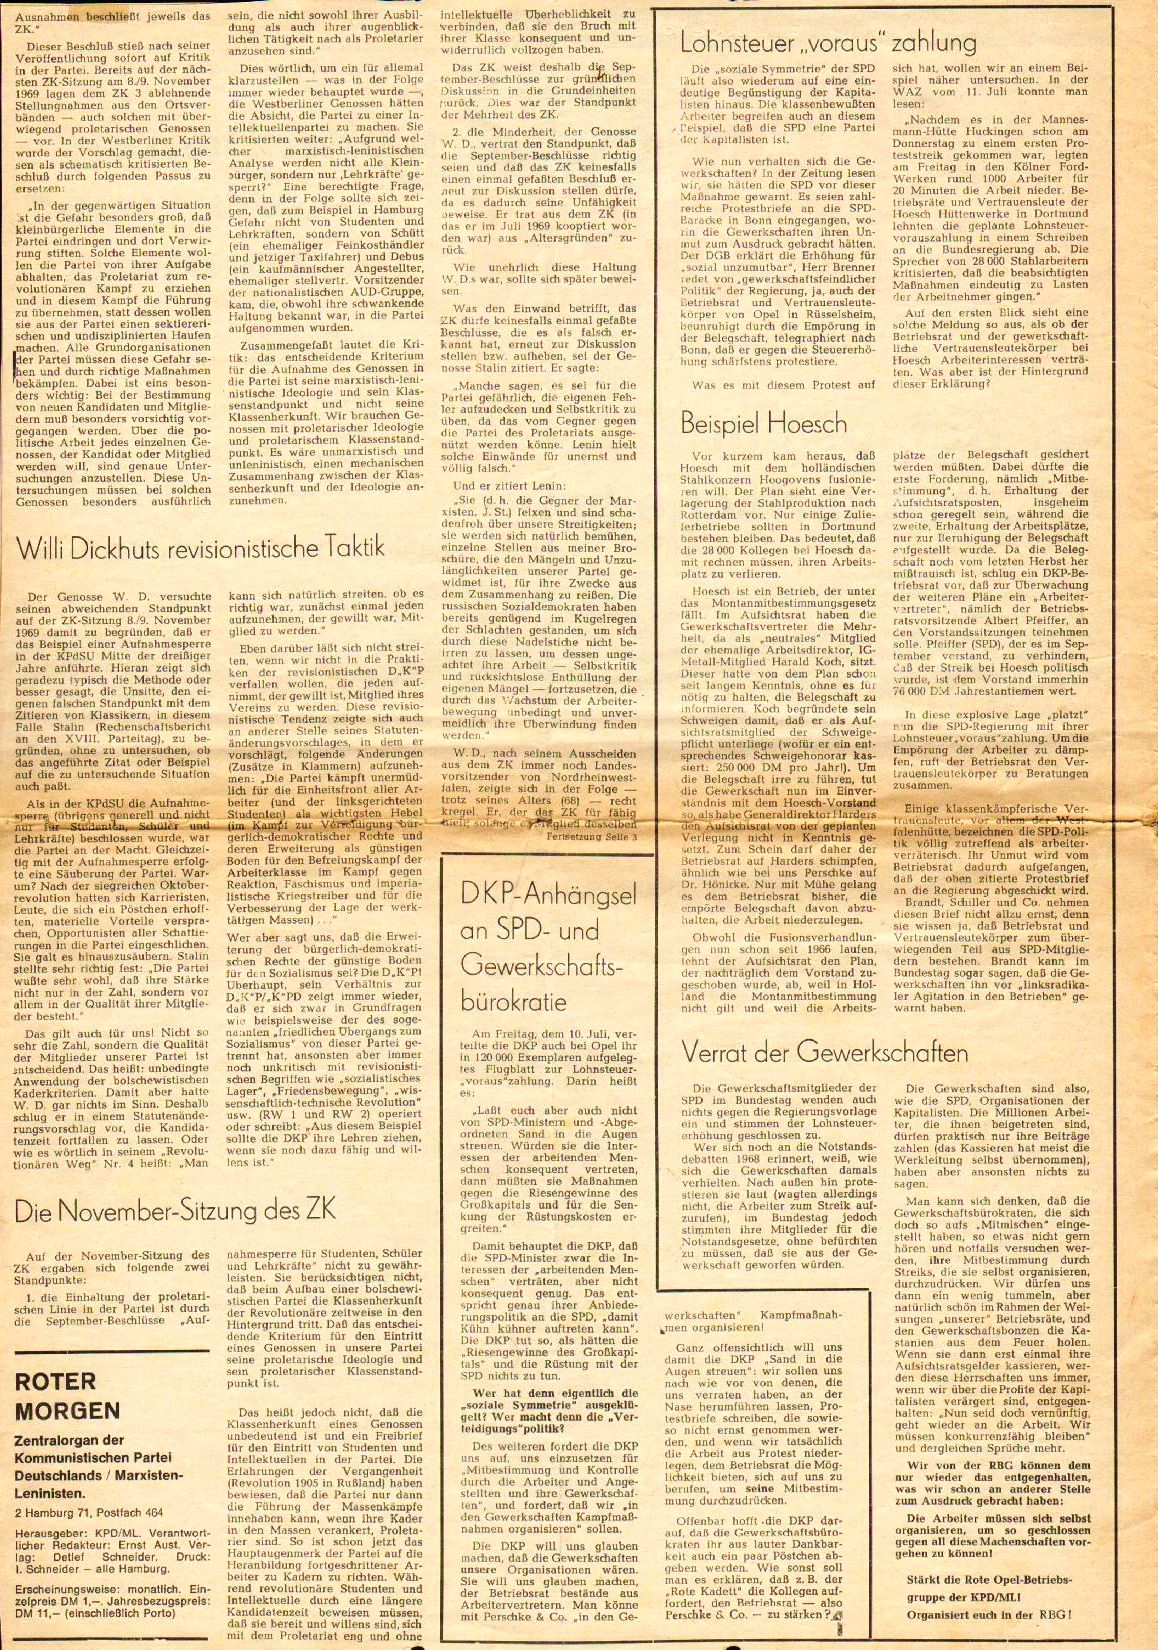 Roter Morgen, 4. Jg., August 1970, Nr. 7, Seite 2